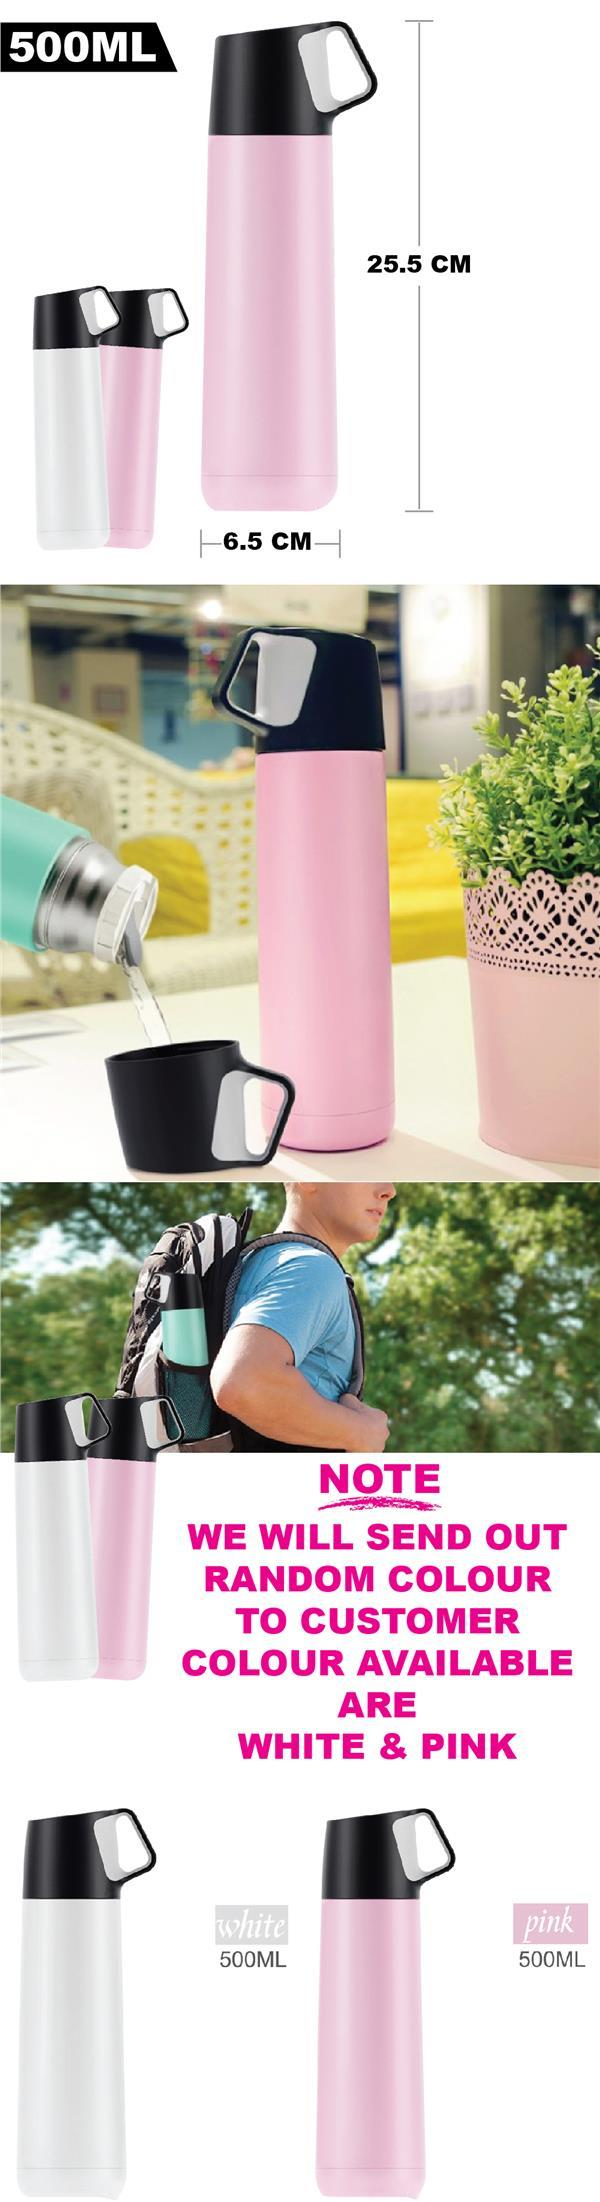 500ML Stainless Steel Vacuum Flask Thermos Cup Heat Preservation